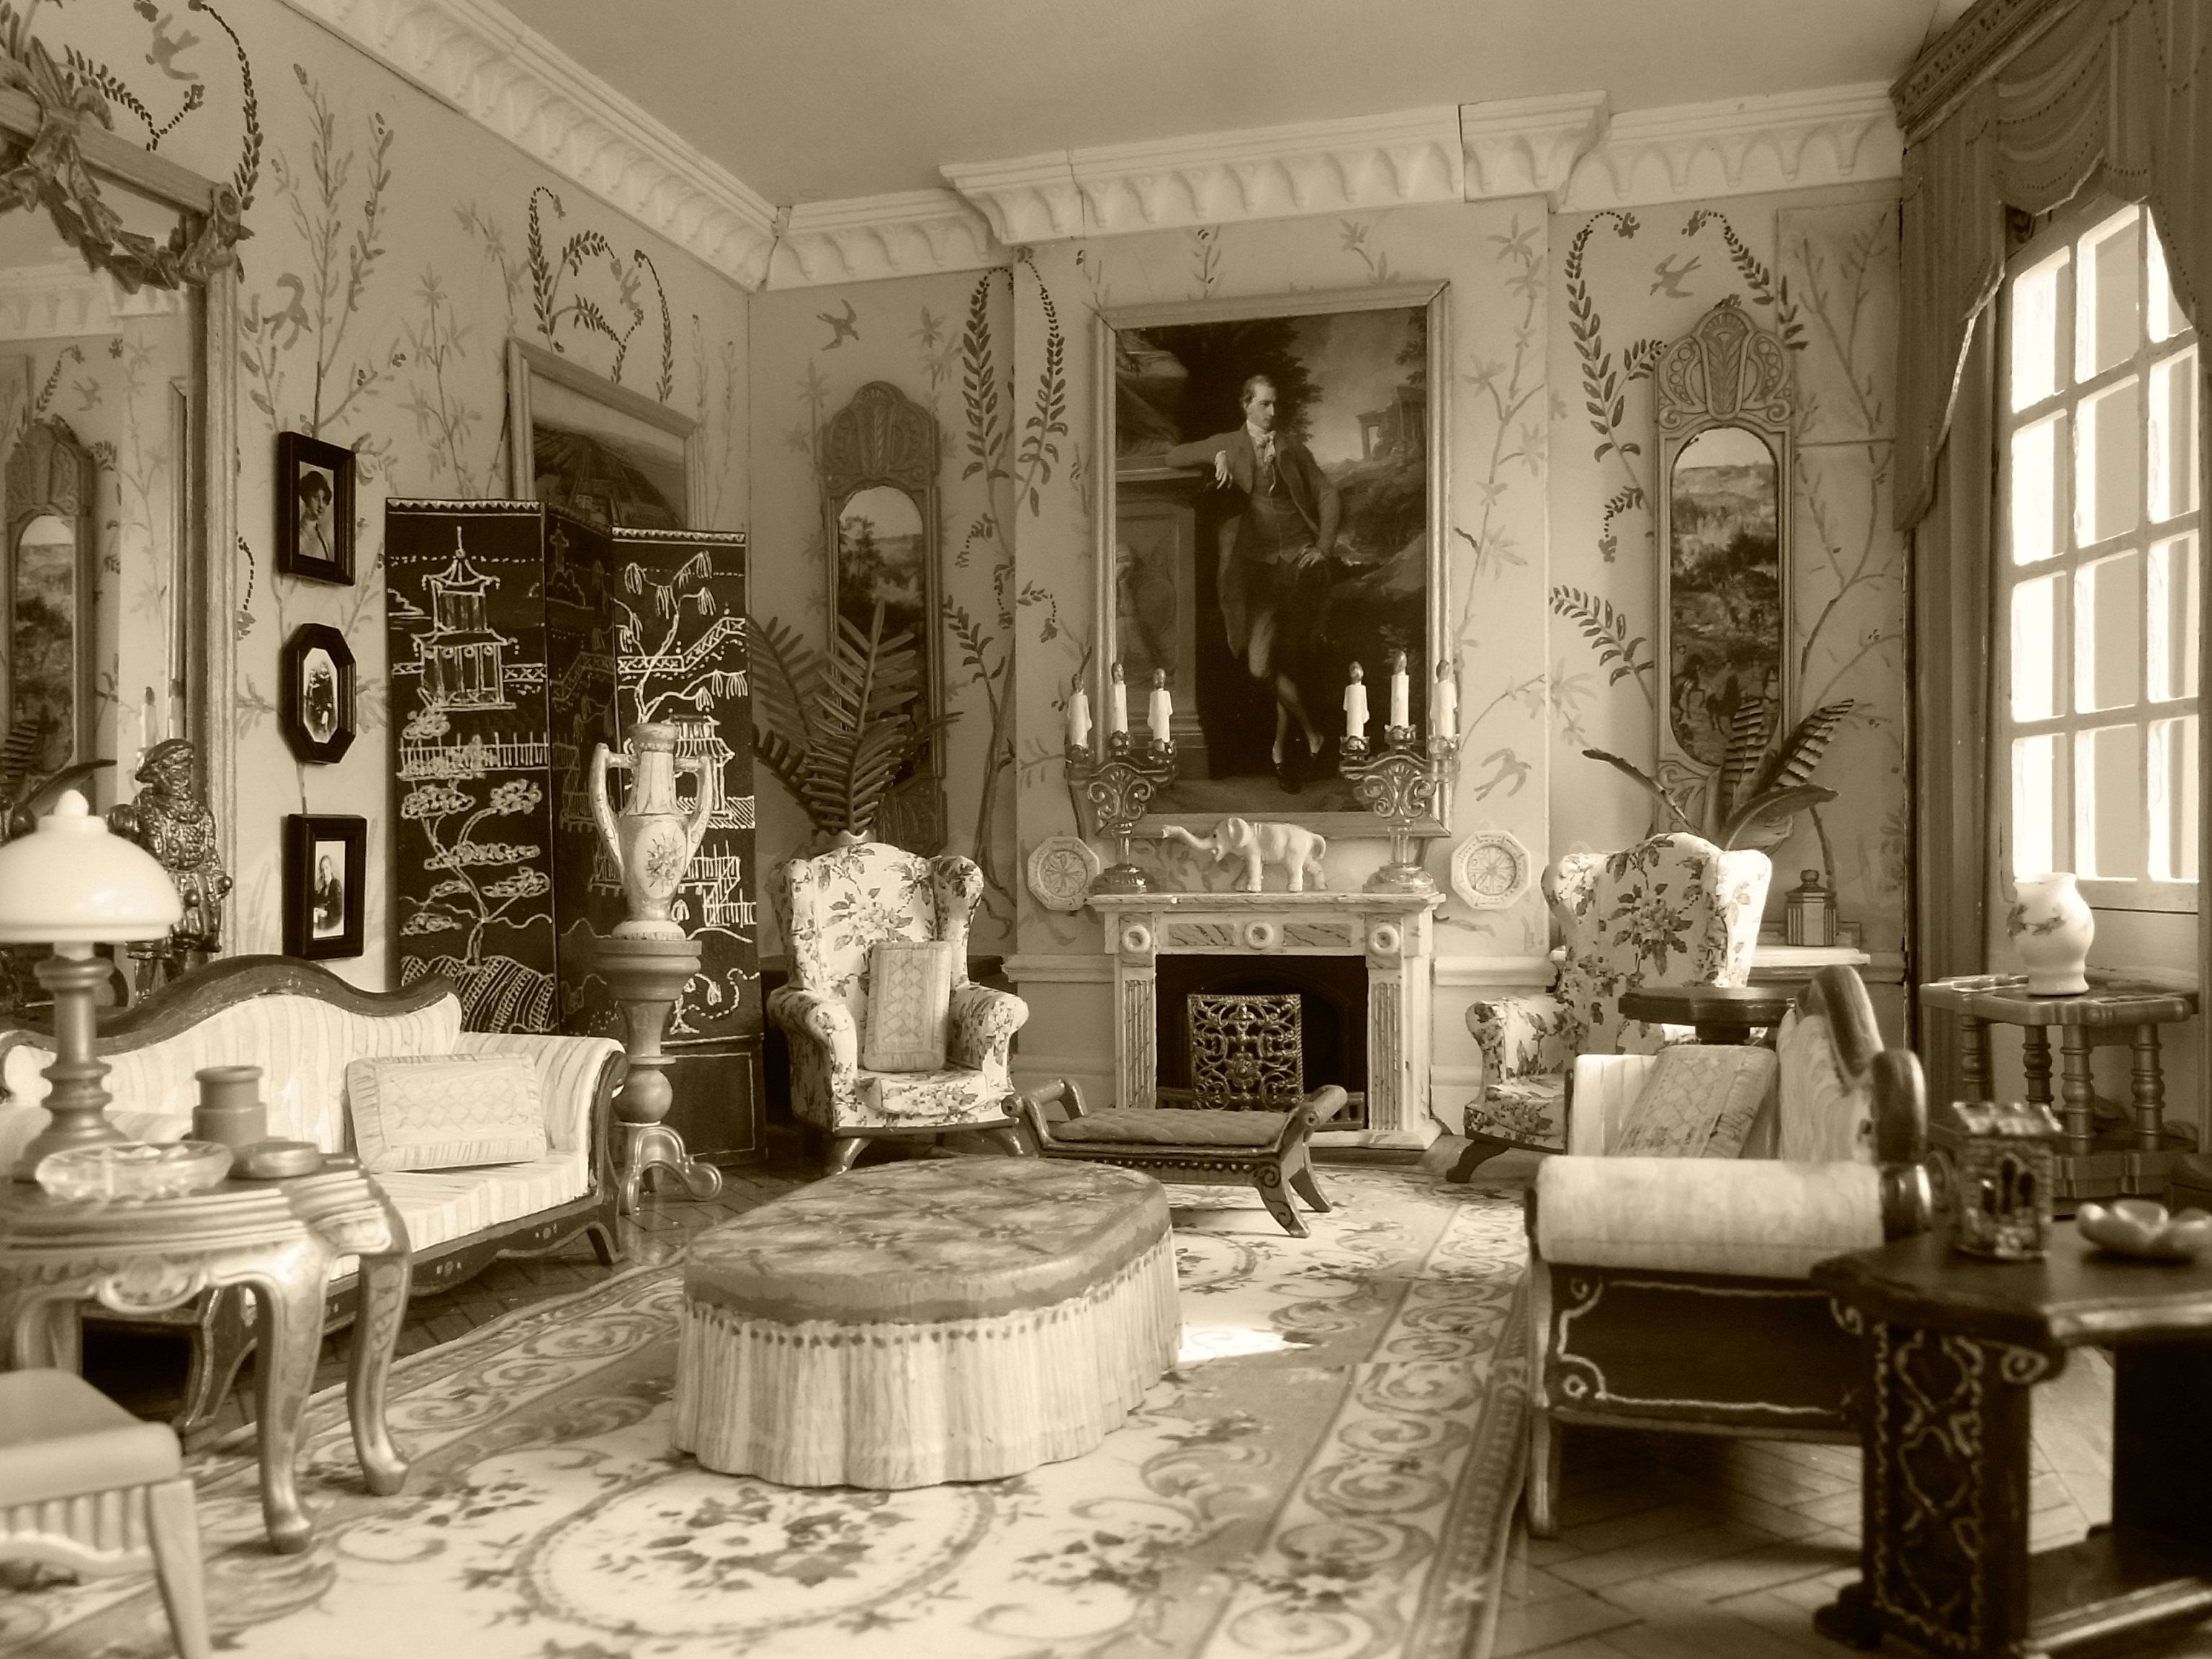 Living Room Ideas Victorian House images for > victorian era bedroom | victorian era | pinterest